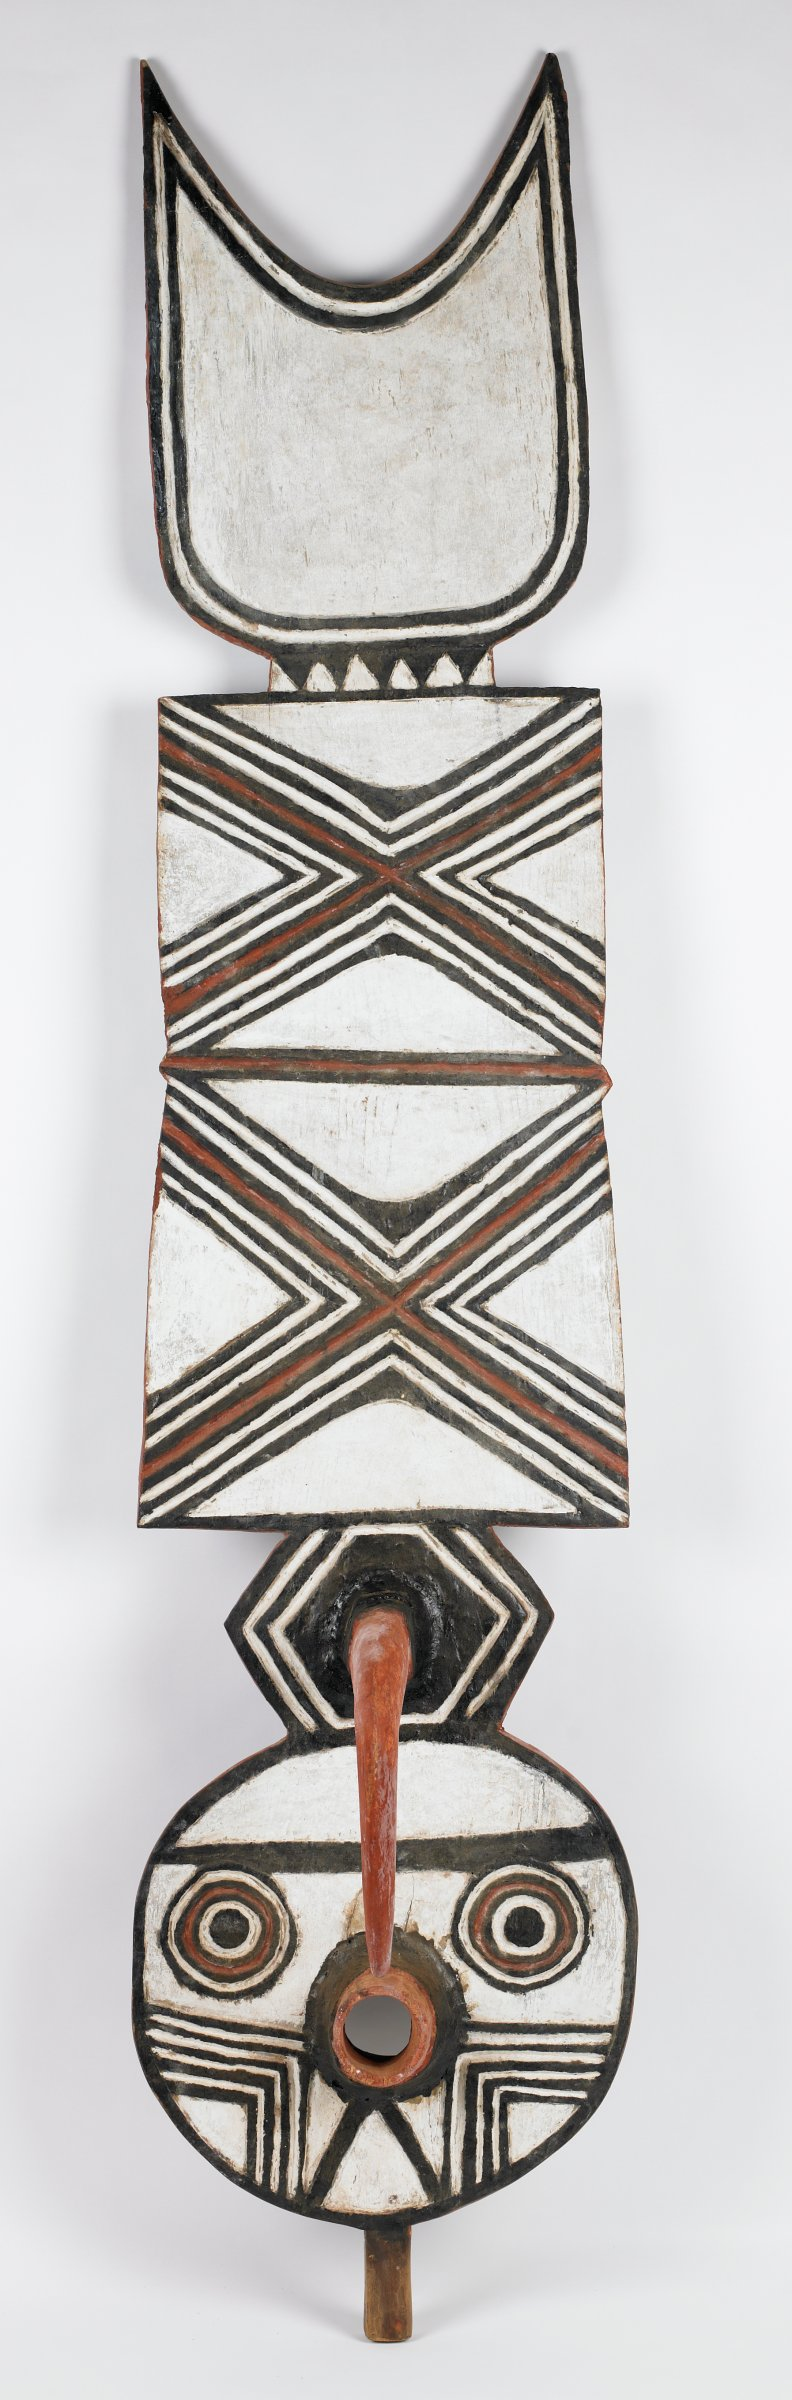 "Tall vertical plank surmounts circular ""face."" Patterns on plank are carved and painted with red, black, and white pigment. Patterns on front include two large ""X"" designs, one atop the other. Top of plank is sculpted into upturned crescent moon shape. Back of plank has checkerboard pattern. Hood ""beak"" shape extends from front of circular face, pointing downward toward circular ""mouth"" opening. Deep oval shape extends from back side of face to cover masquerader's face. Holes around edge of oval for rope to secure mask to back of masquerader's head."